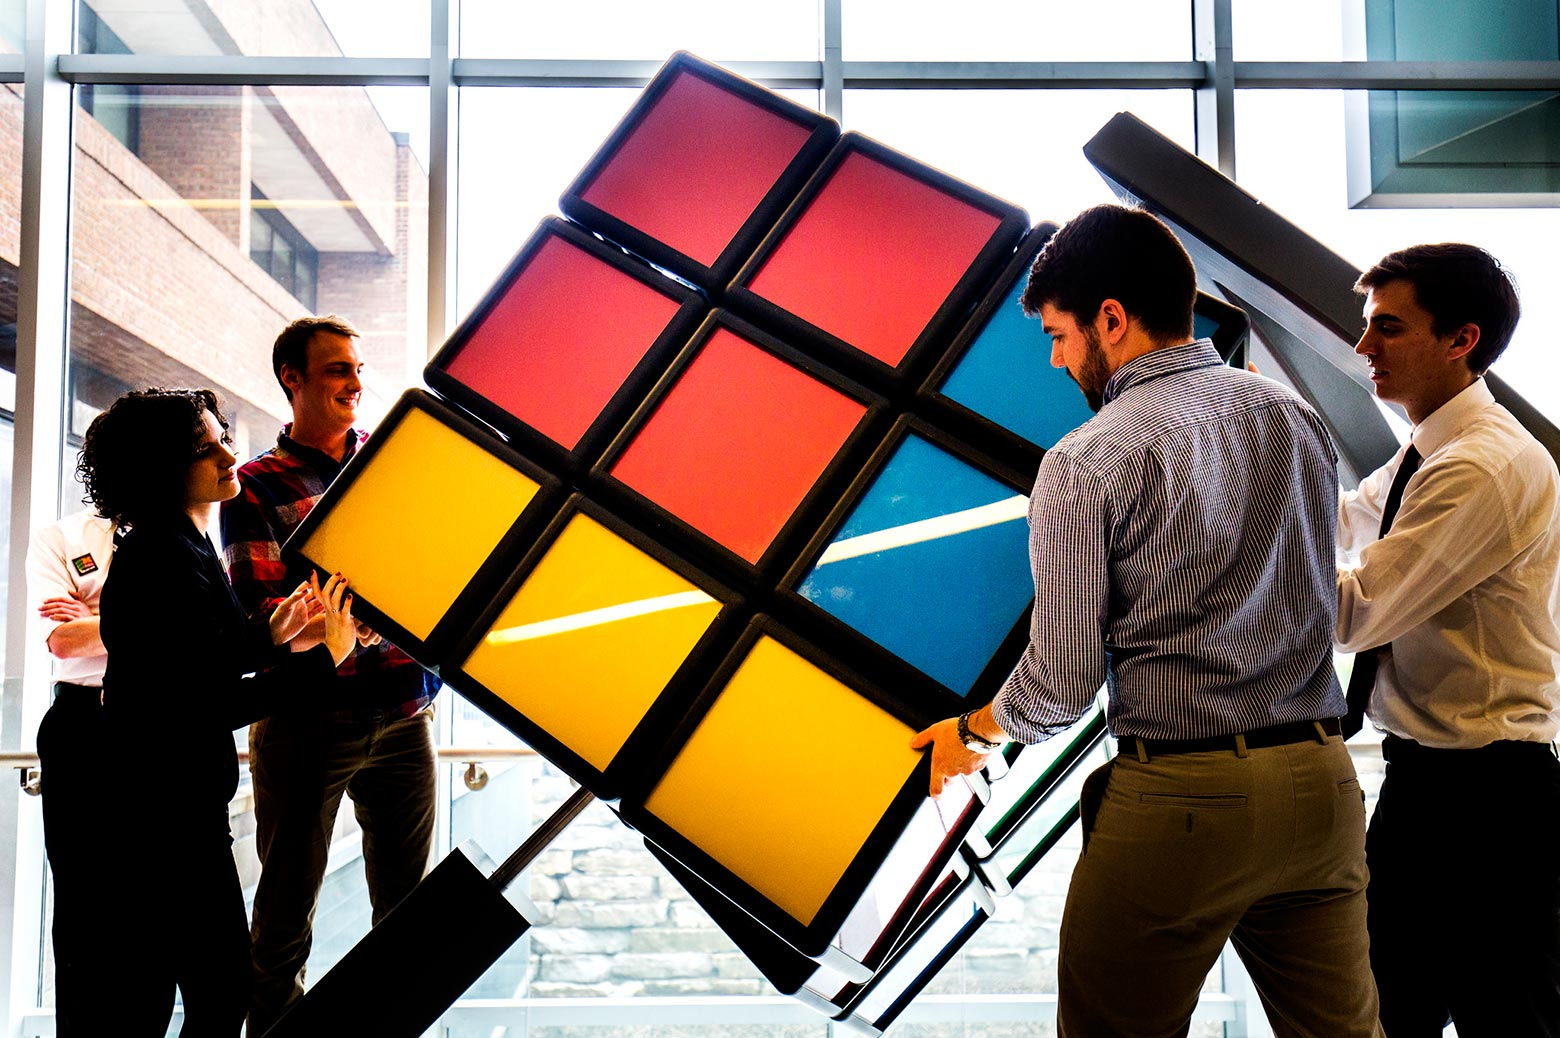 largest free-standing rubik's cube in the world